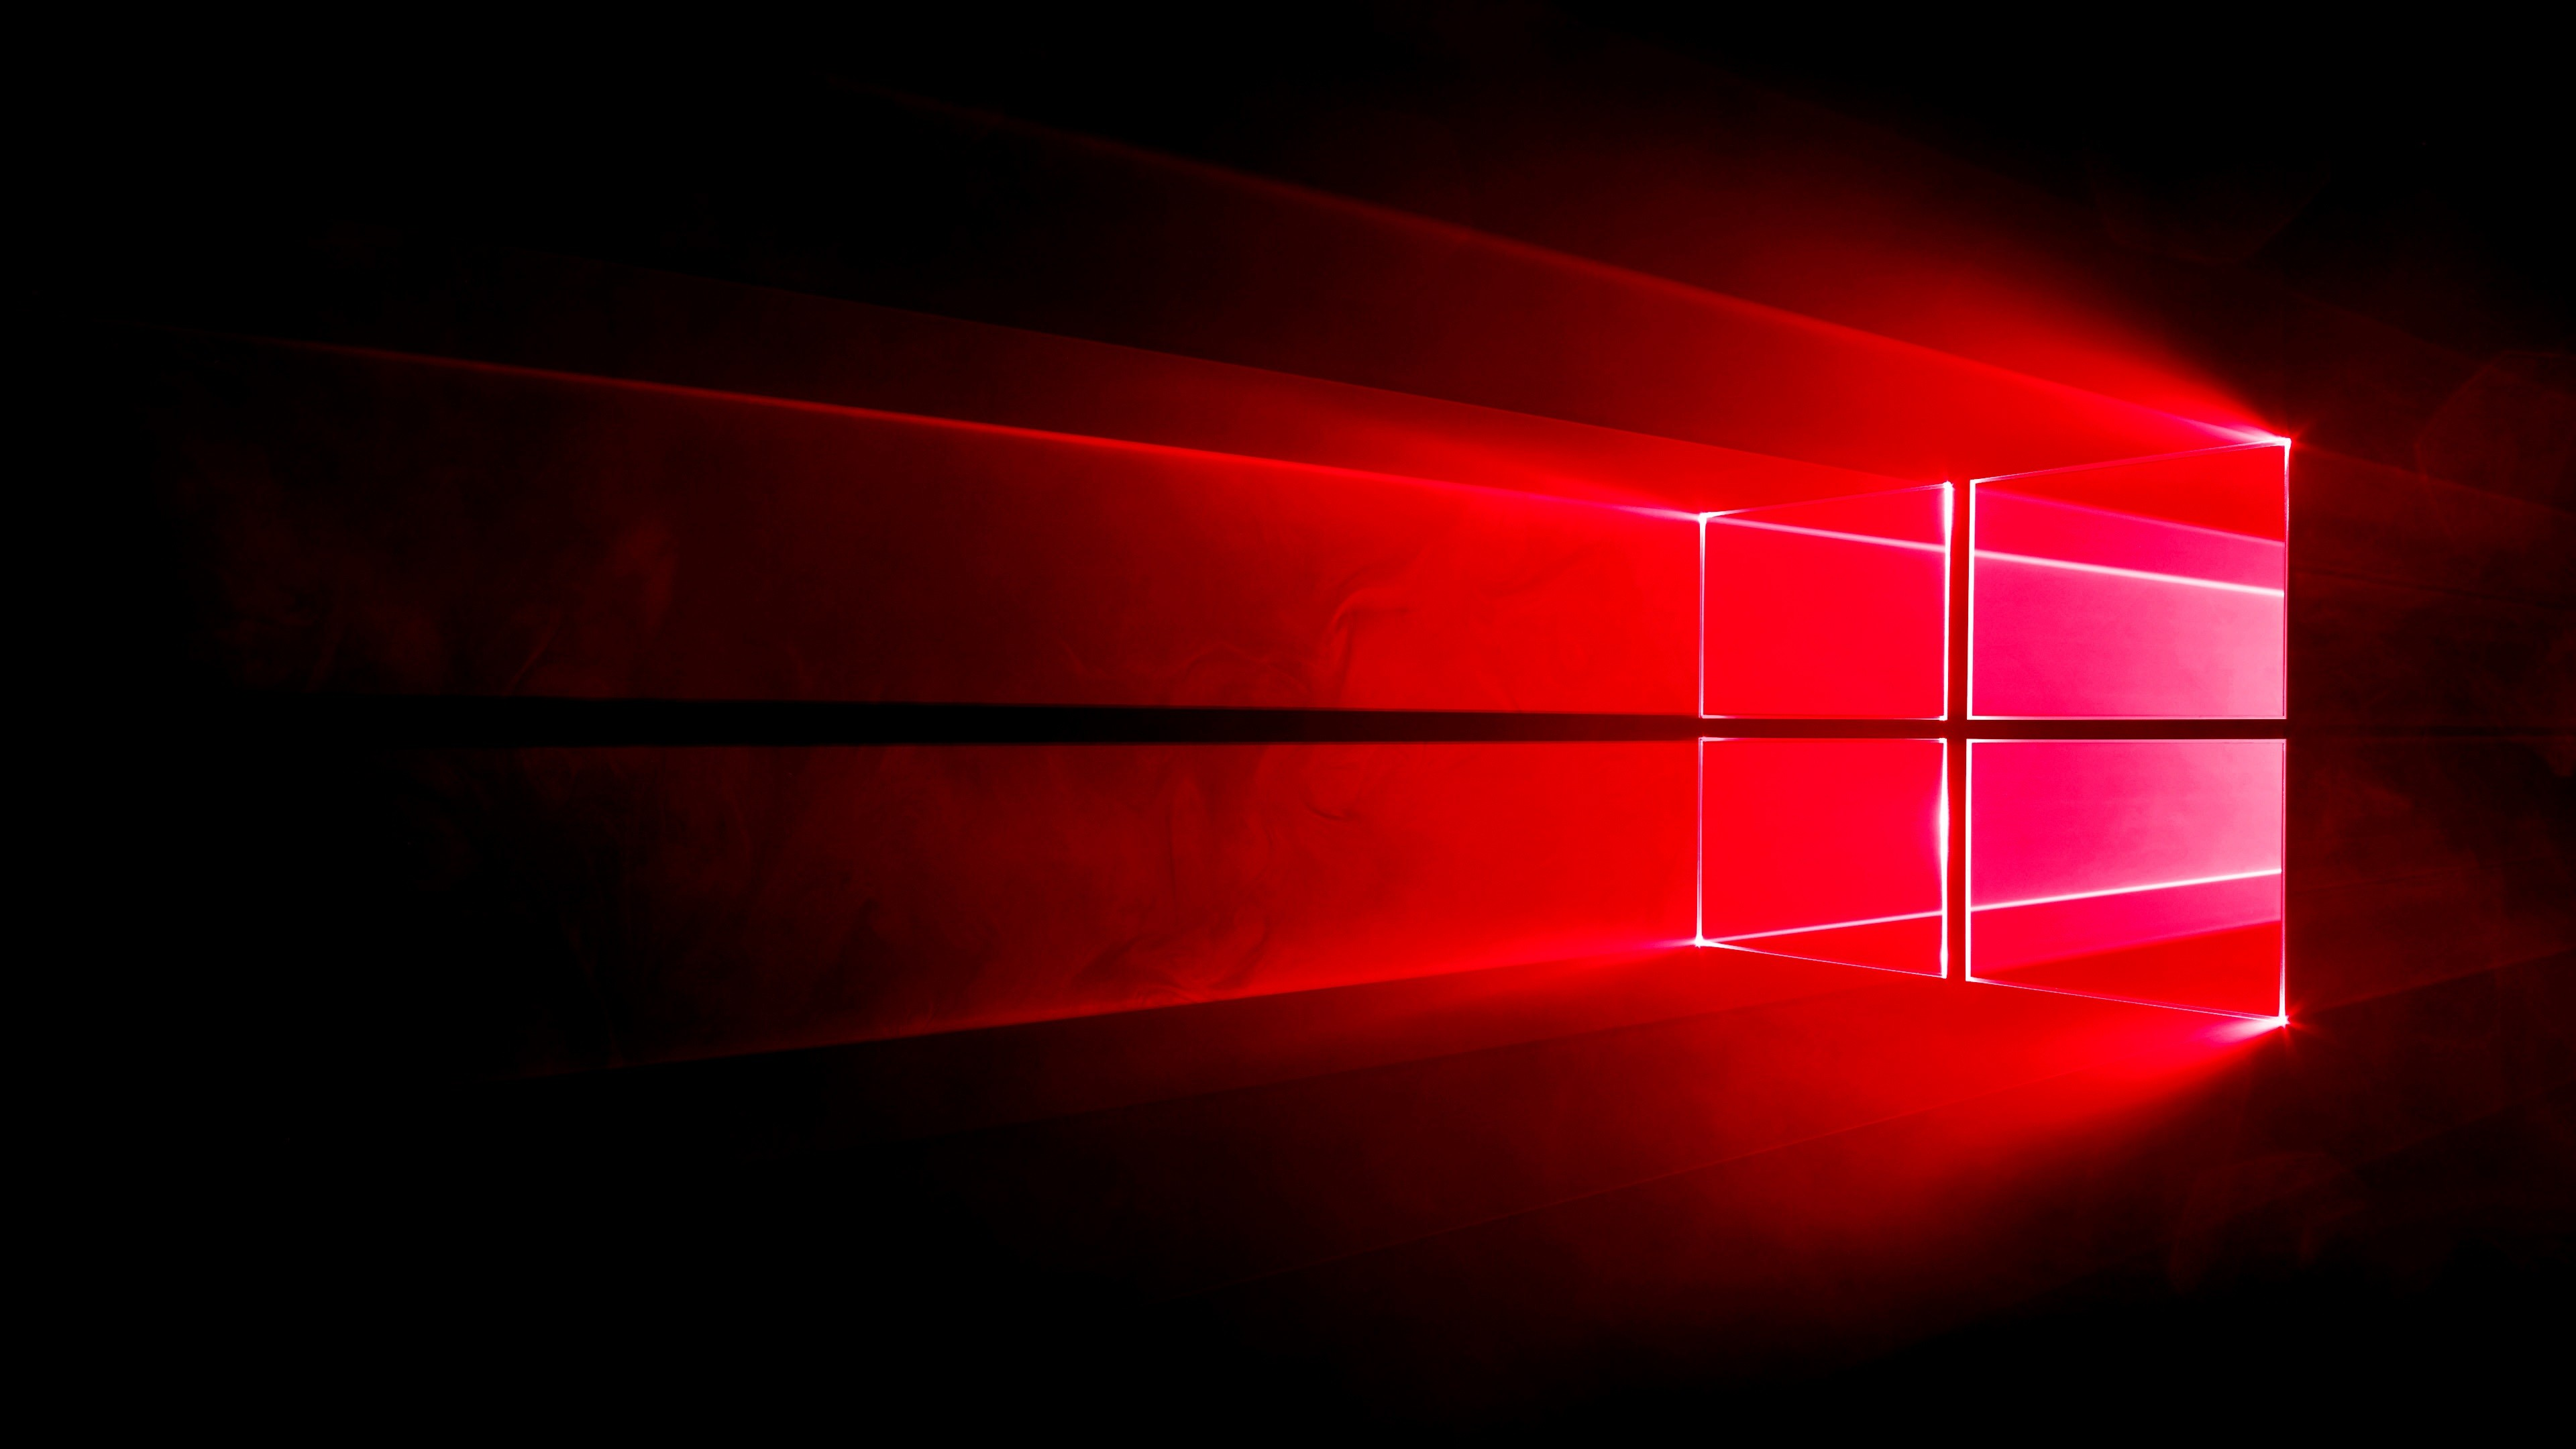 Microsoft starts focusing on windows 10 redstone 4 development for Microsoft windows